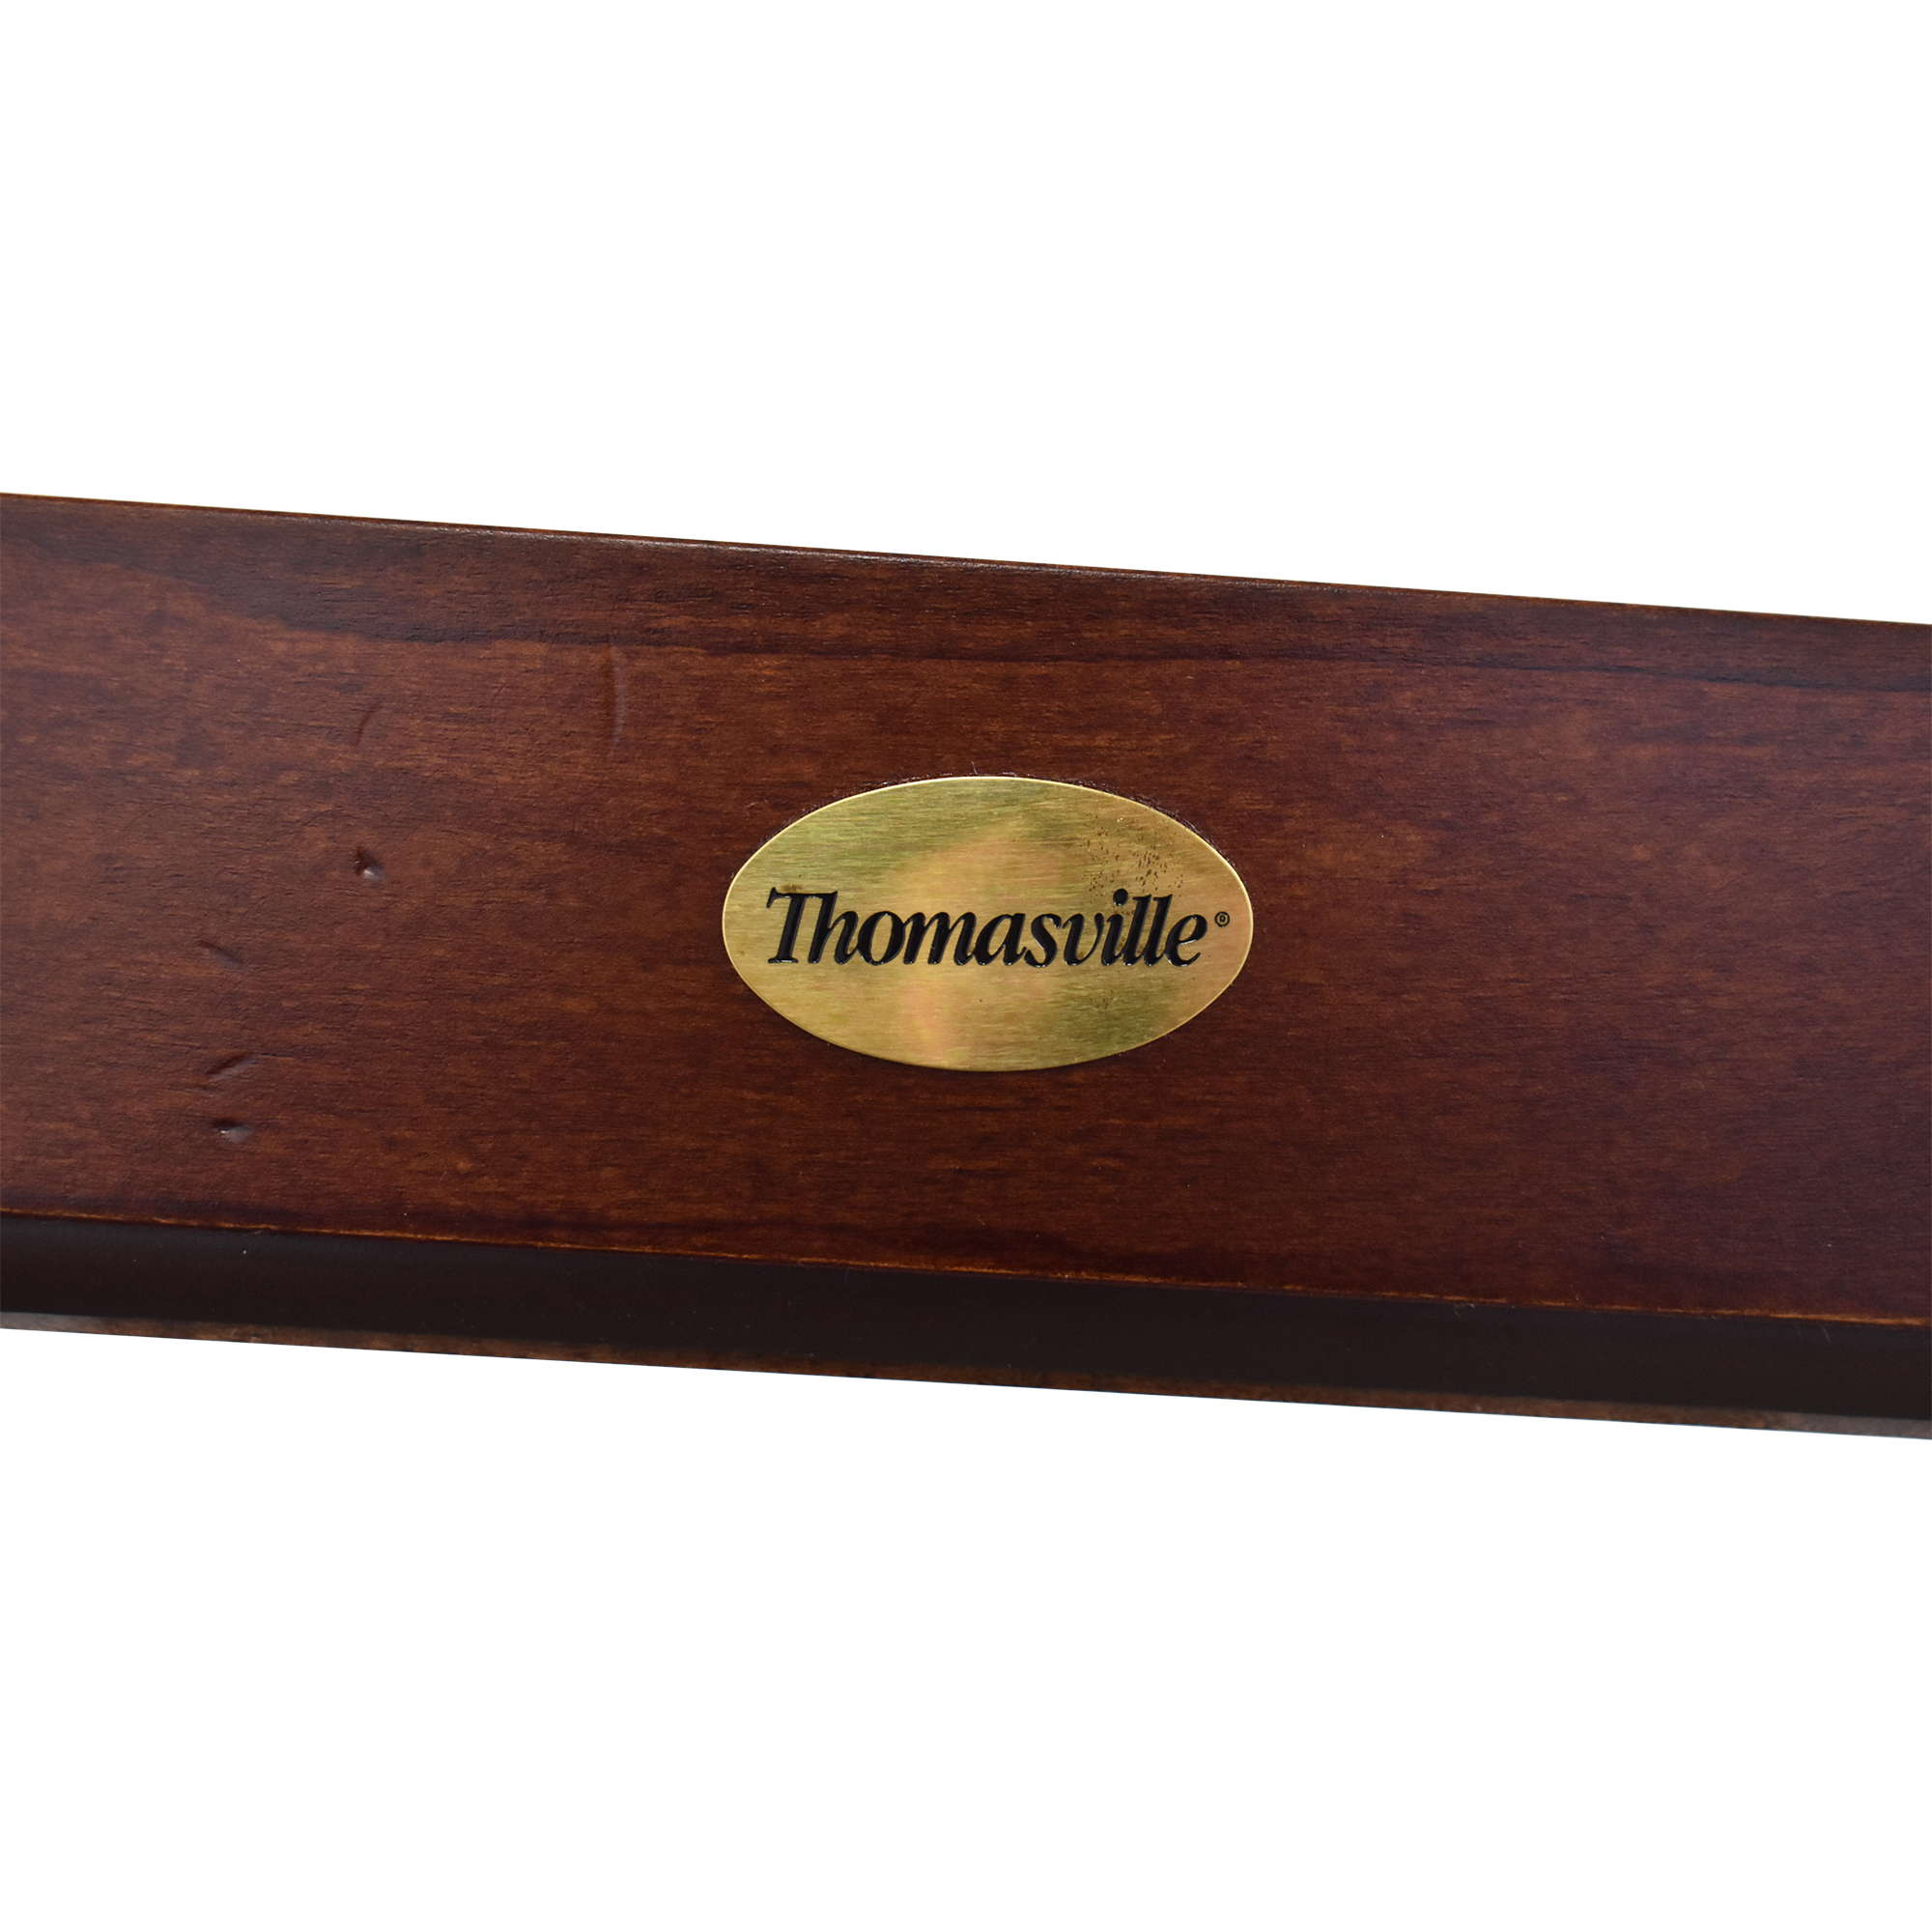 buy Thomasville Thomasville Display Accent Table online